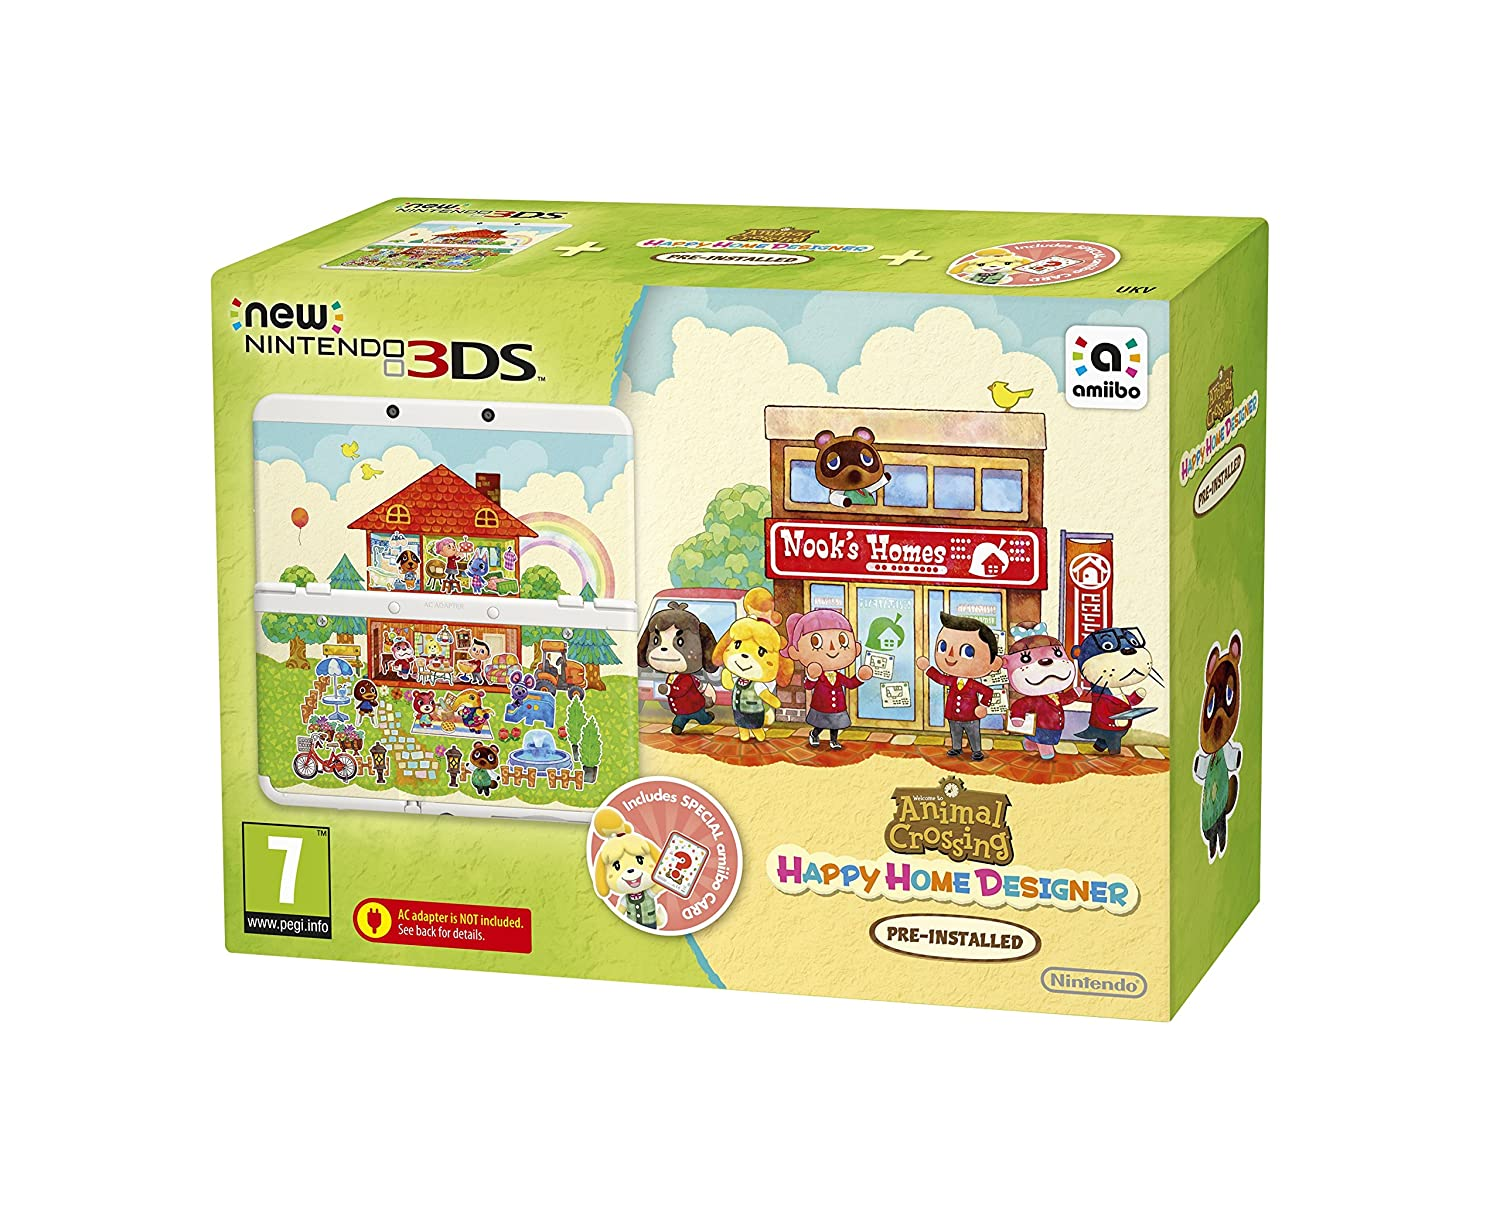 New 3DS + Animal Crossing: Happy Home Designer + Coverplate + amiibo Happy Home Designer on